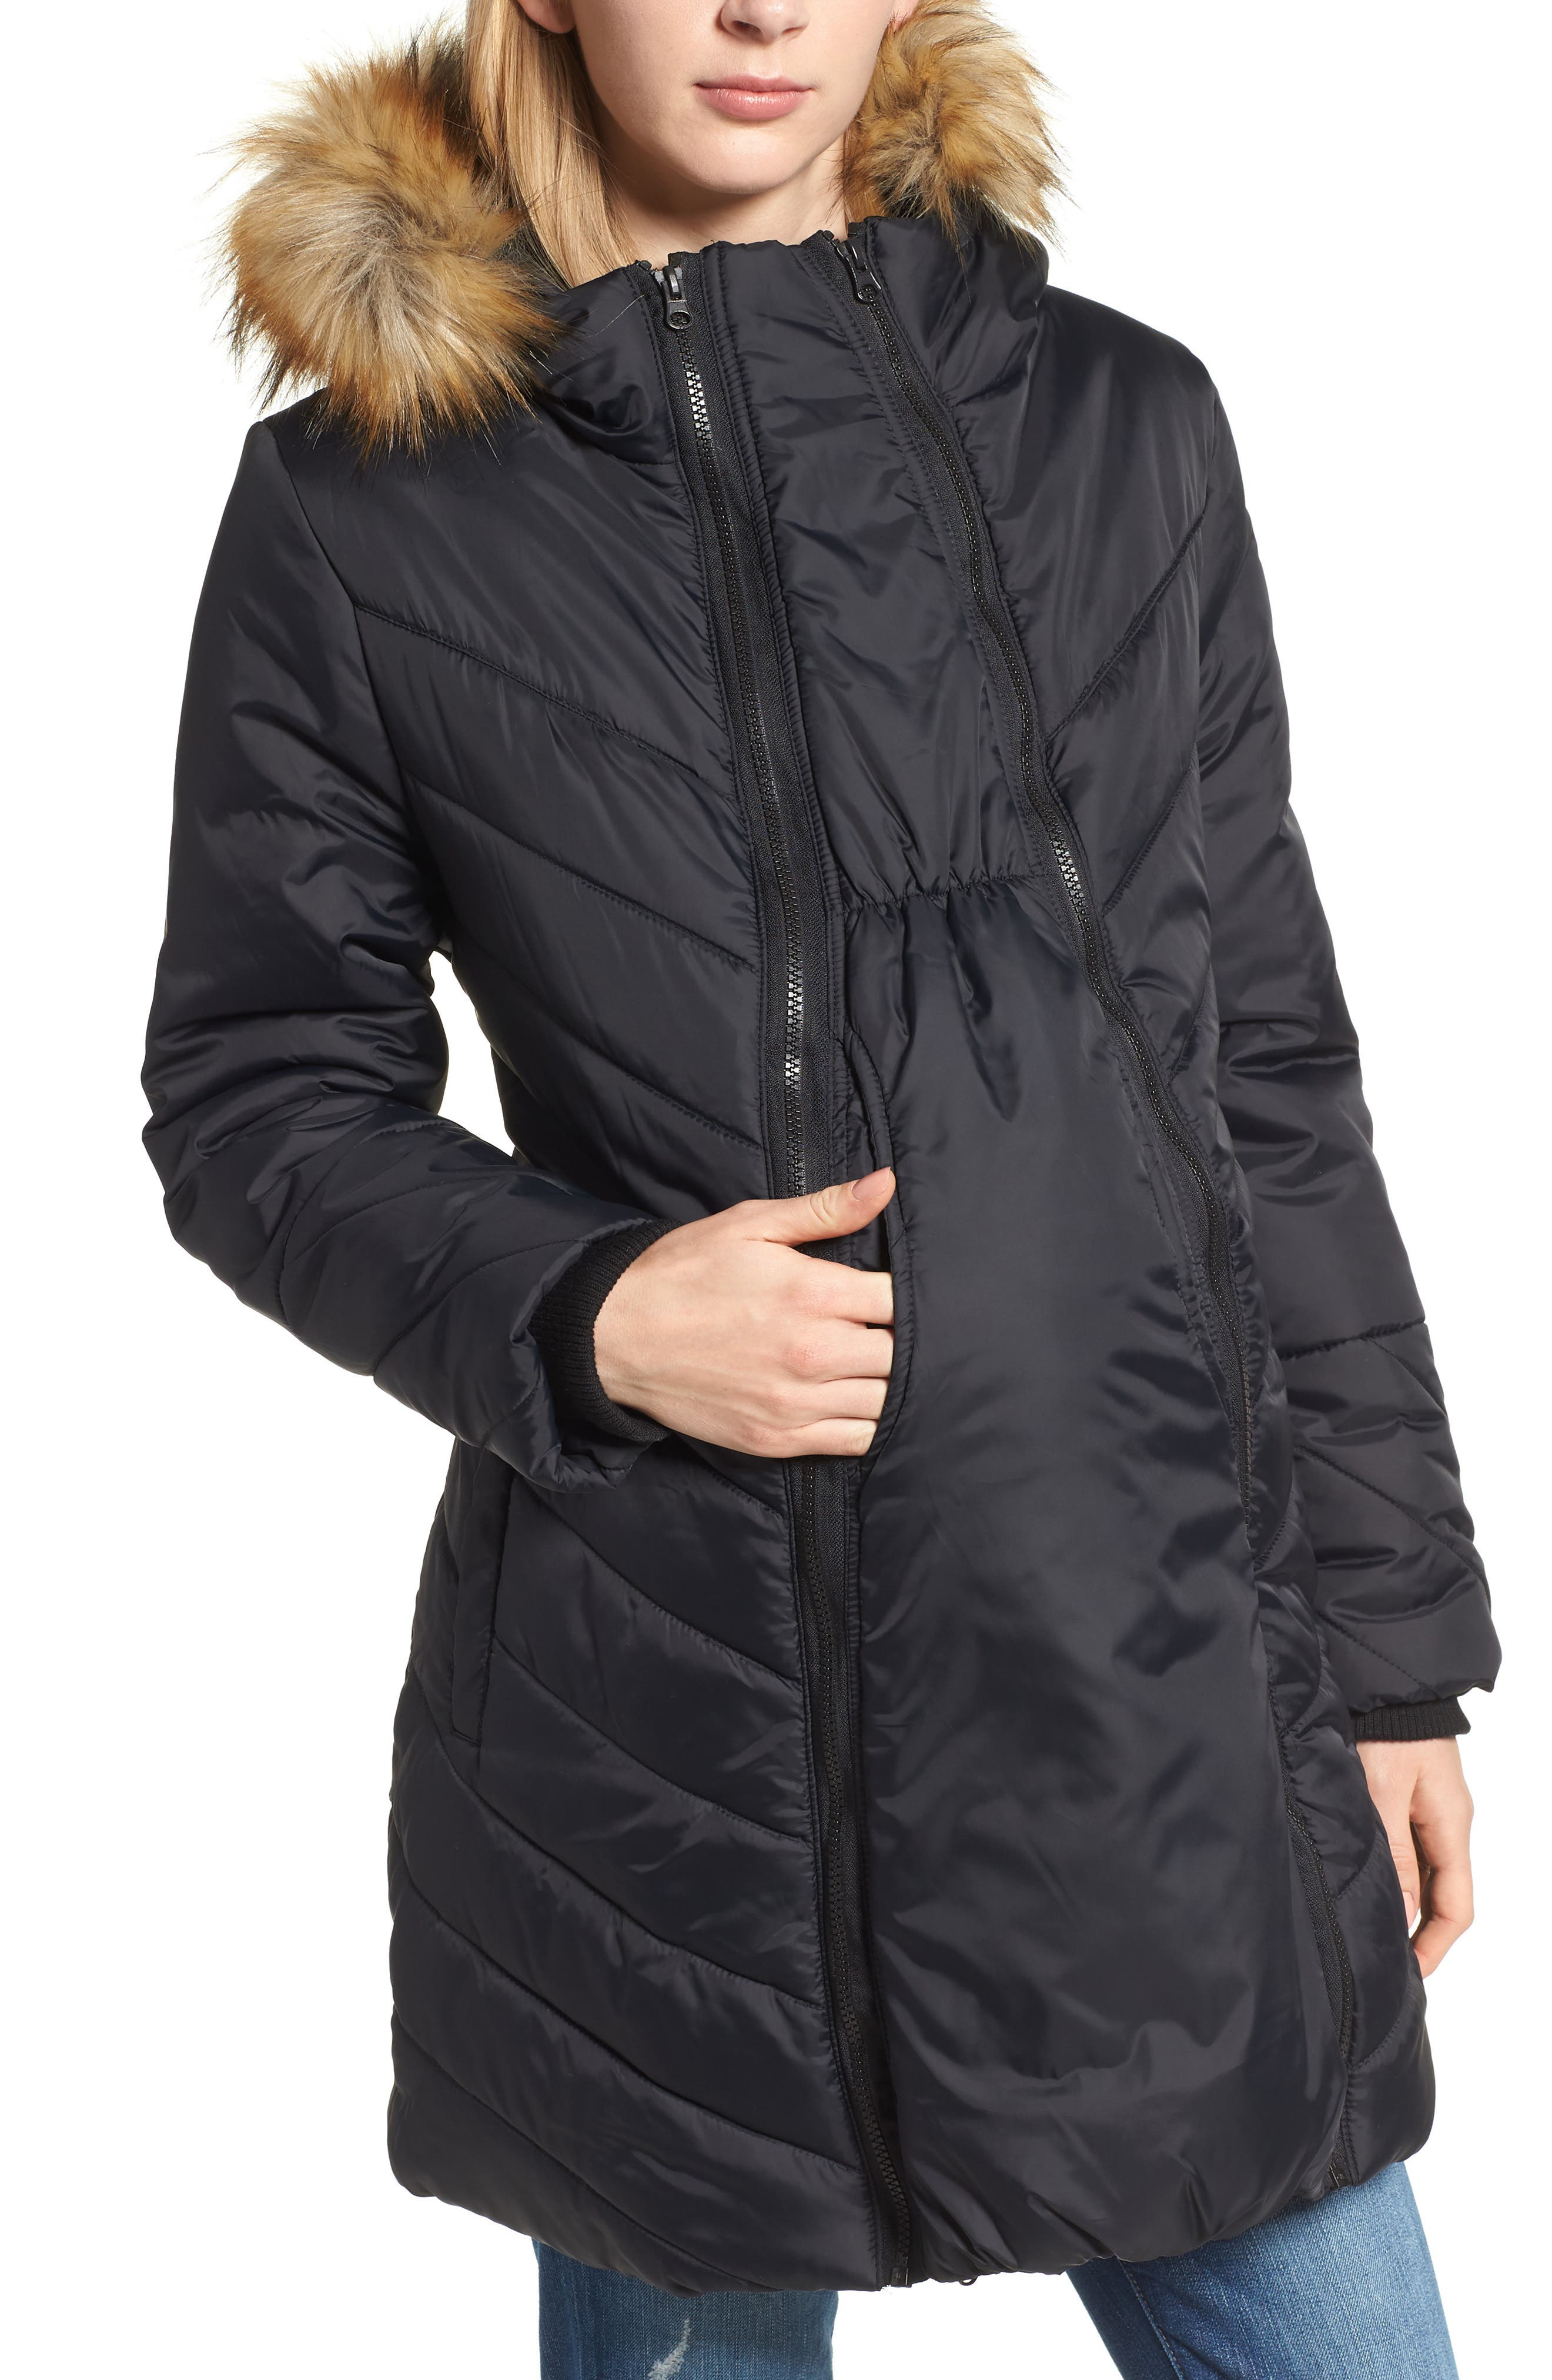 Modern Eternity Faux Fur Convertible Puffer Maternity Jacket